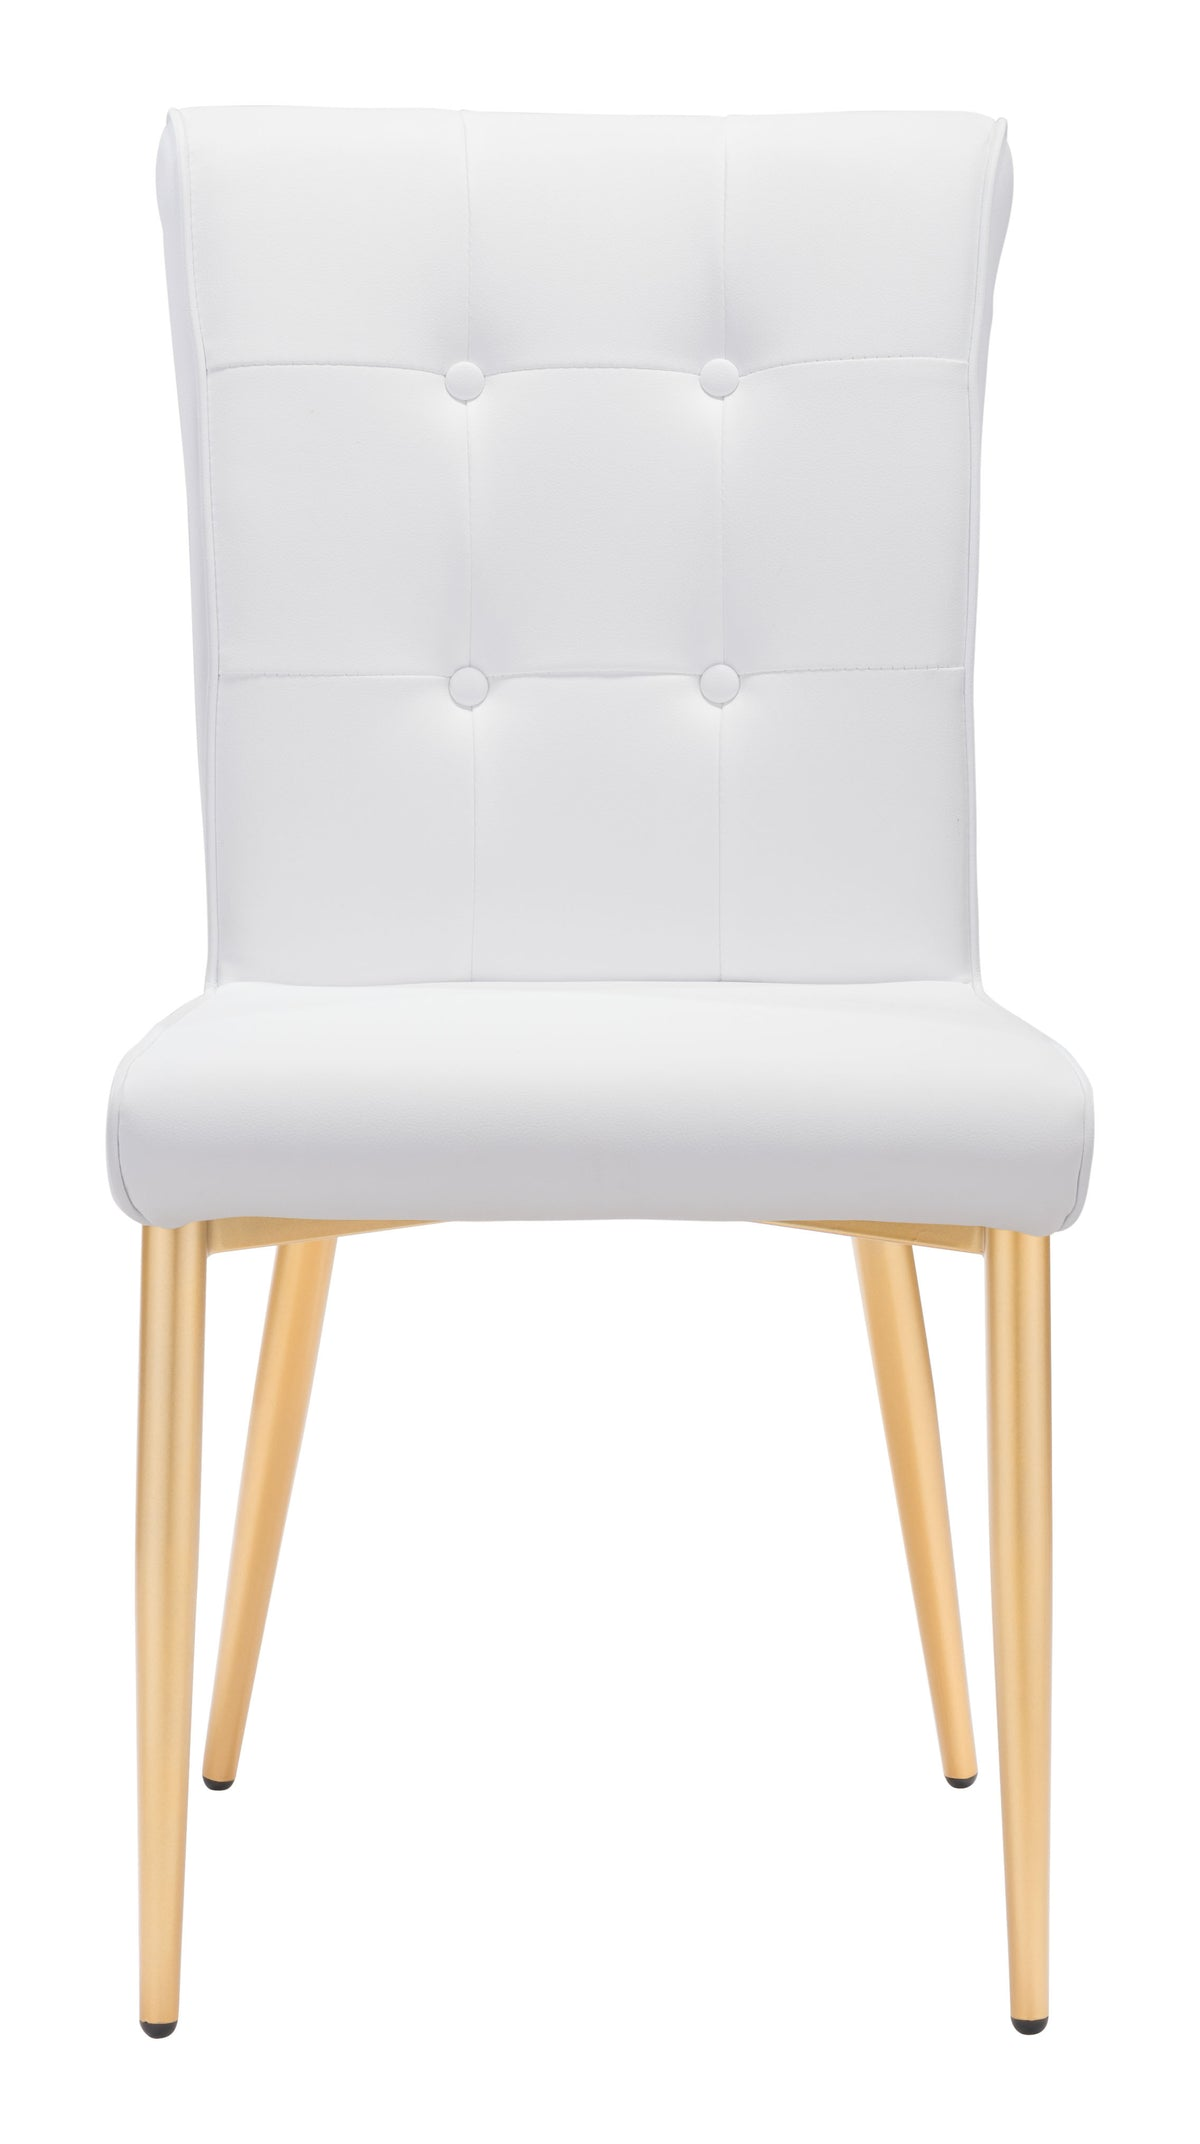 Kezia Dining Chair - Set of 2